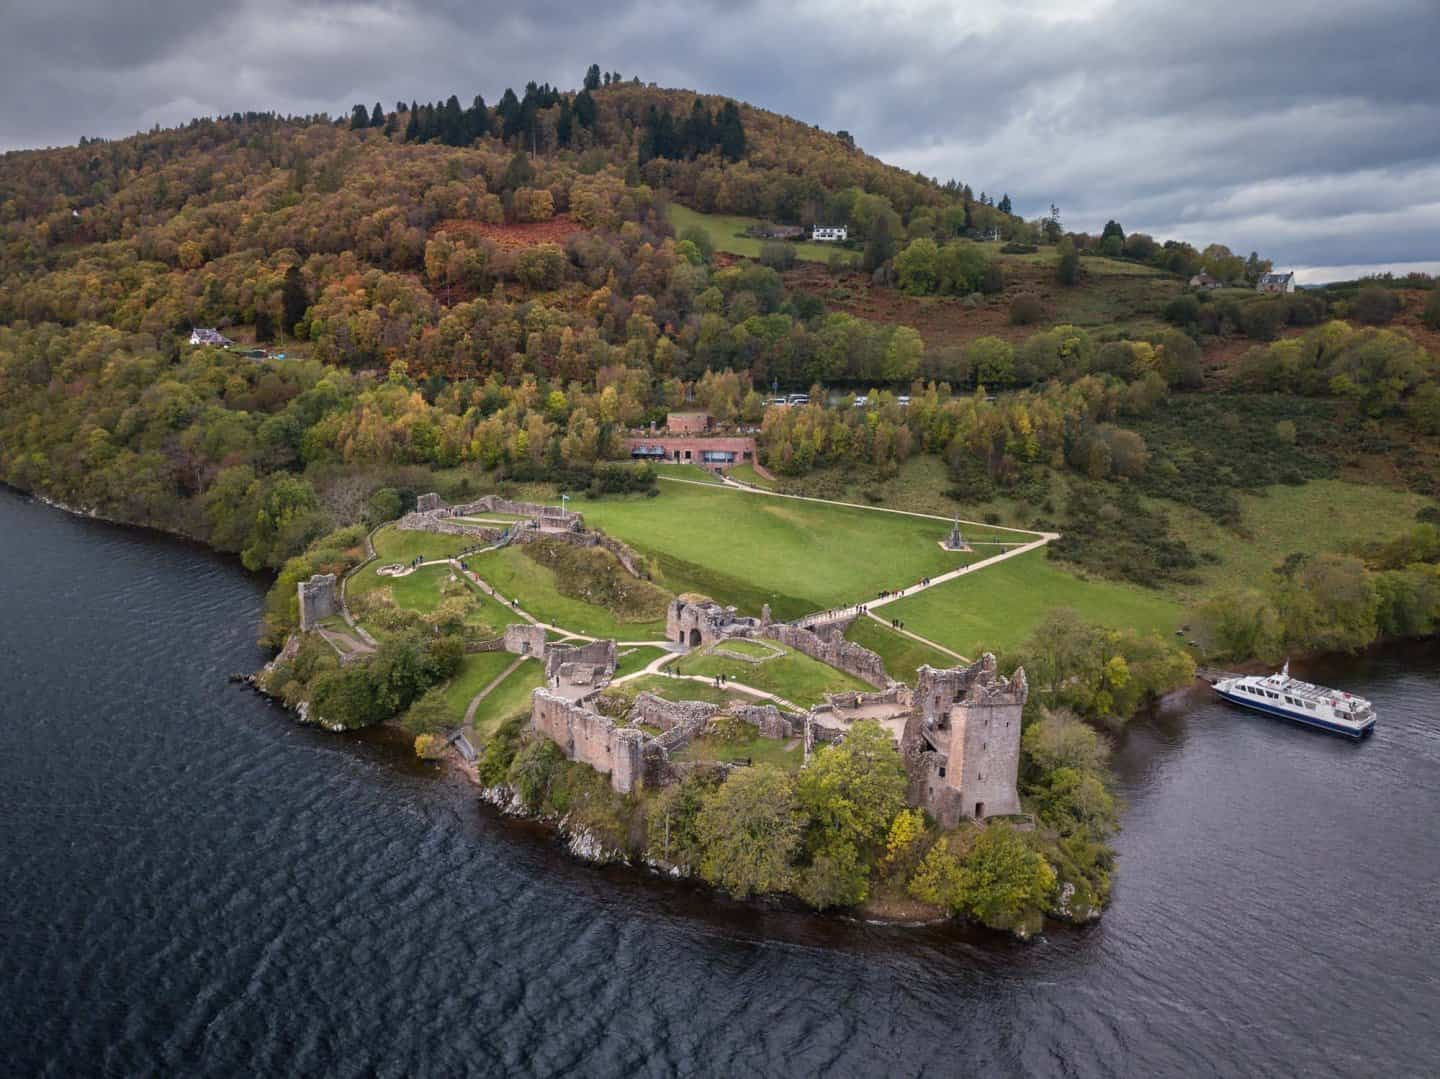 A view of Urquhart Castle on Loch Ness from the water.